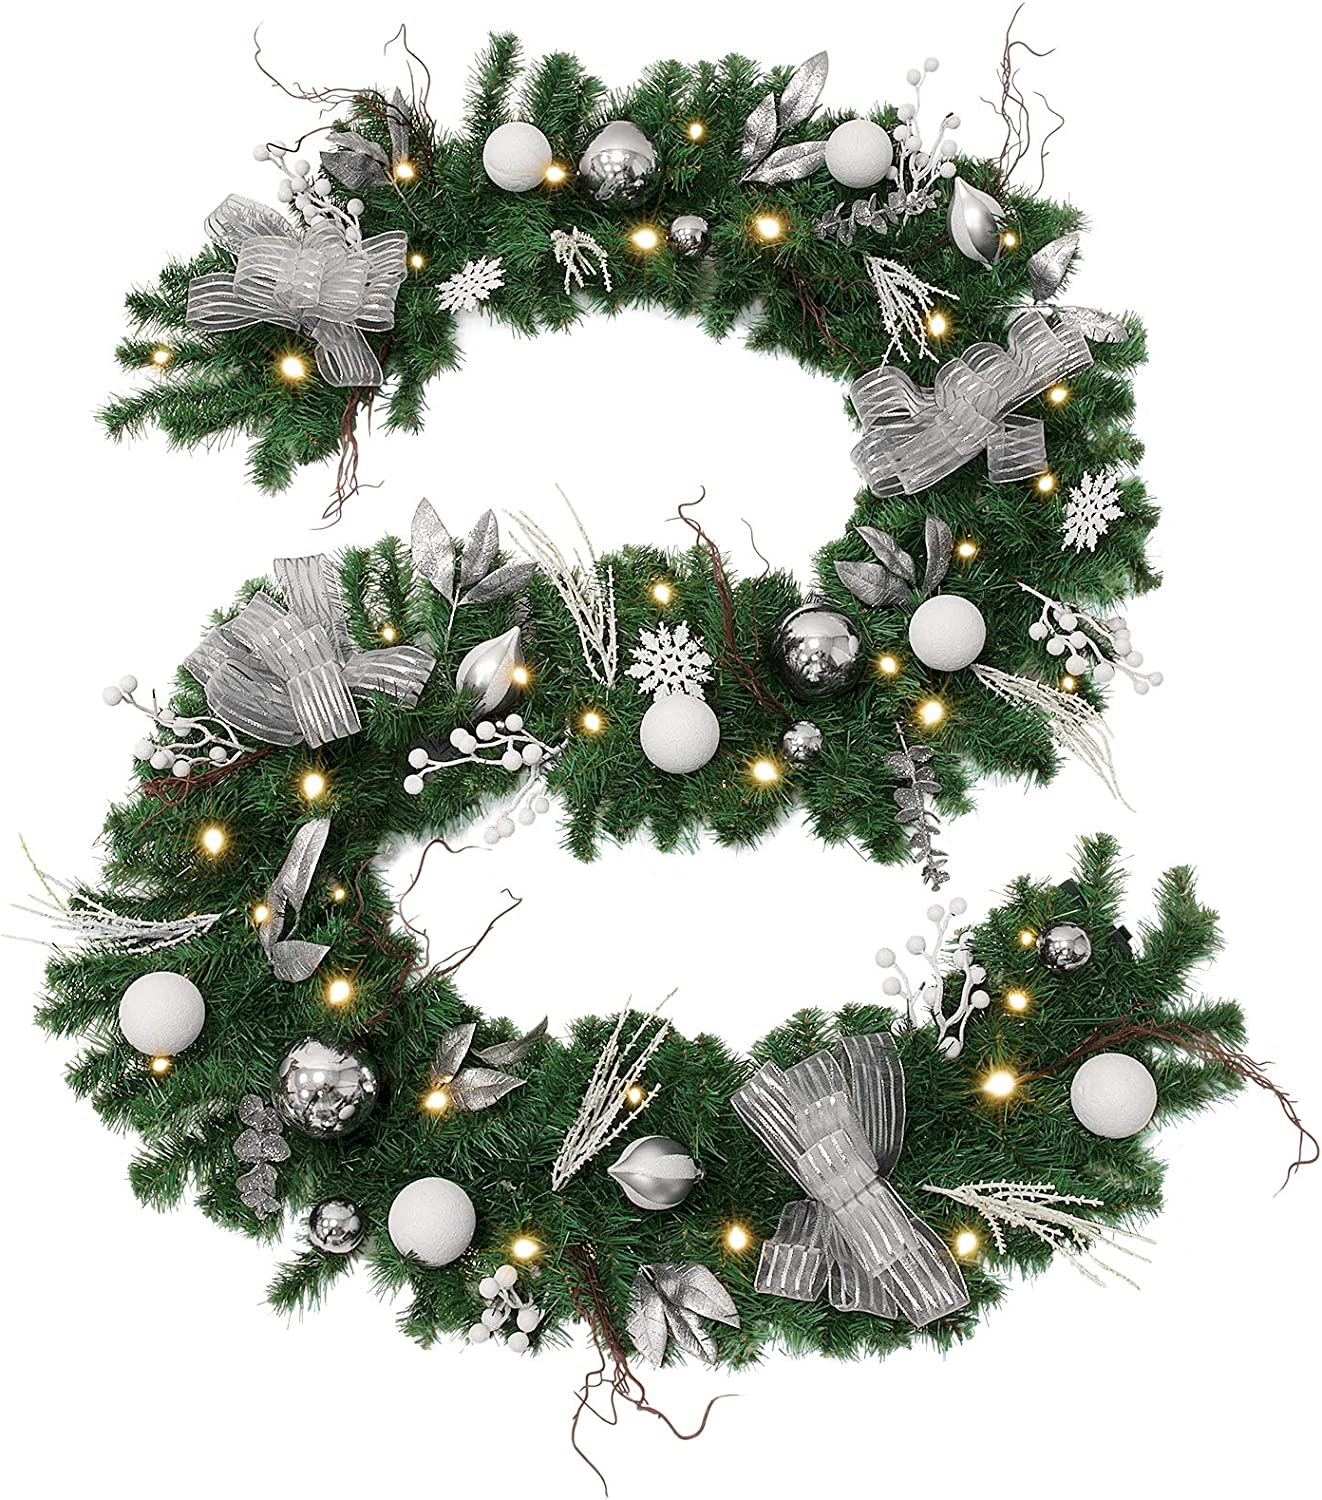 WBHome Pre-lit 9 Ft/106 Inch Christmas Garland Silver White Themed with 50 LED Lights, 250 Branch Tips, Battery Operated (Batteries NOT Included)